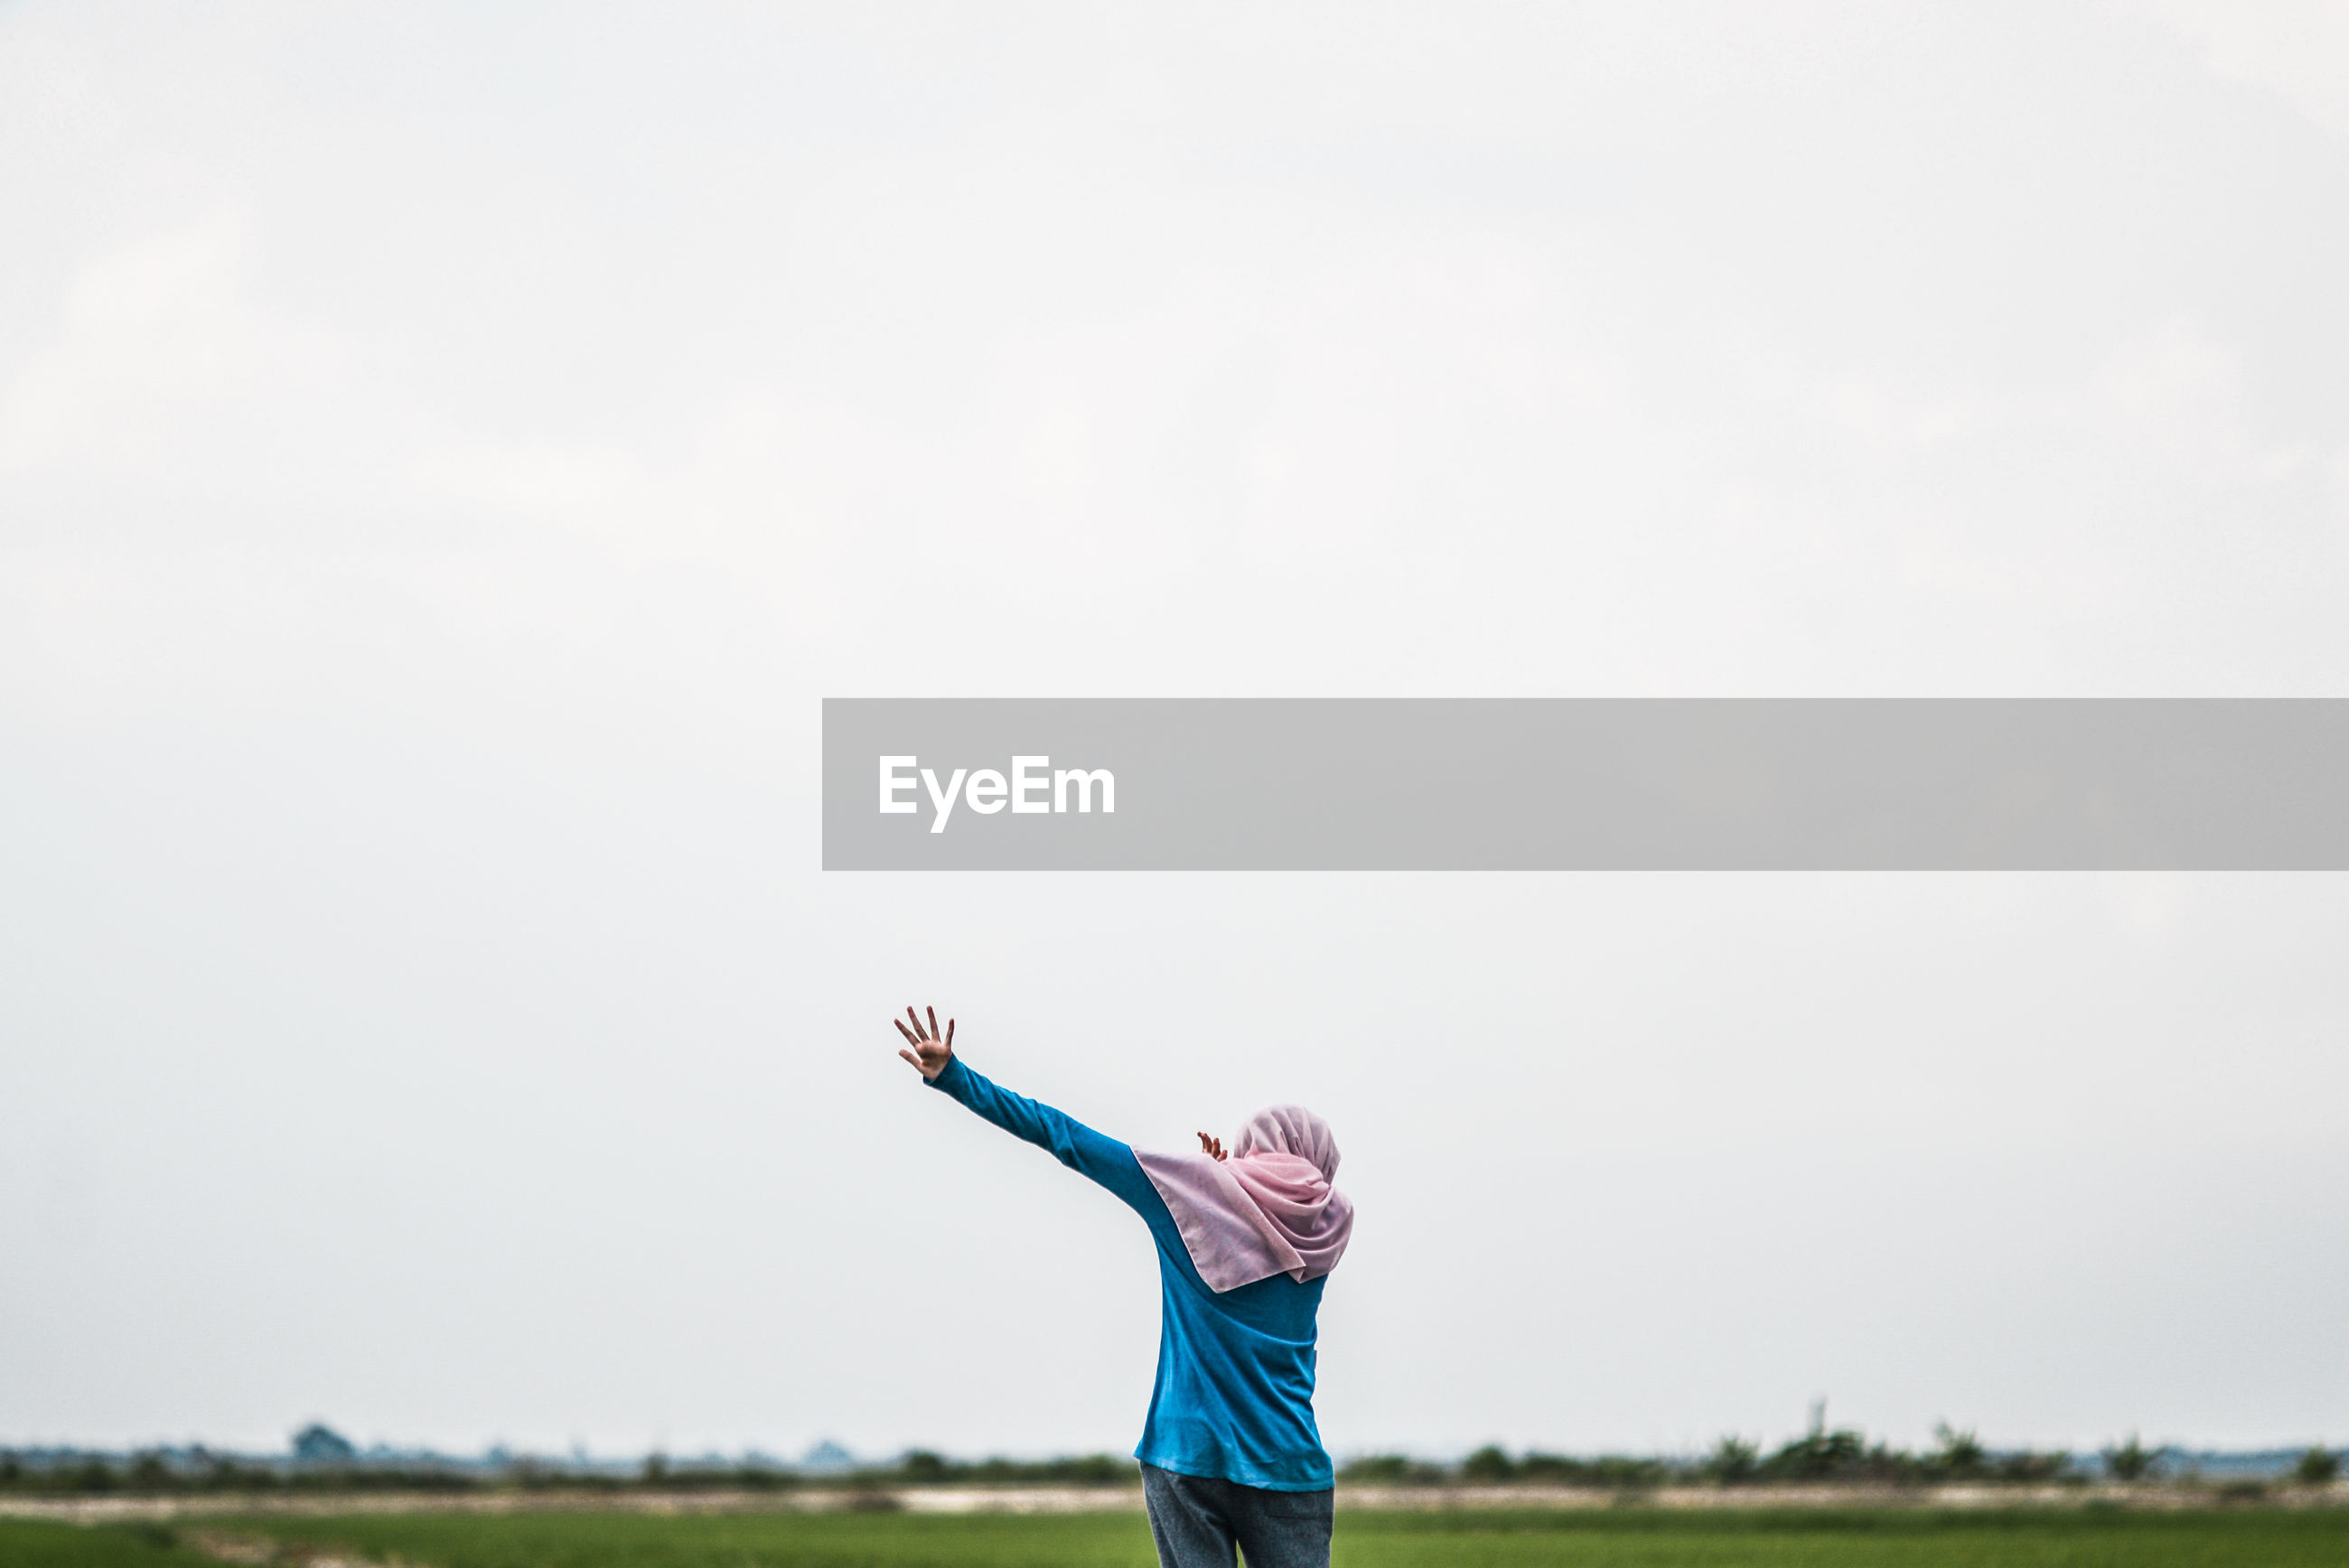 Person on field against clear sky